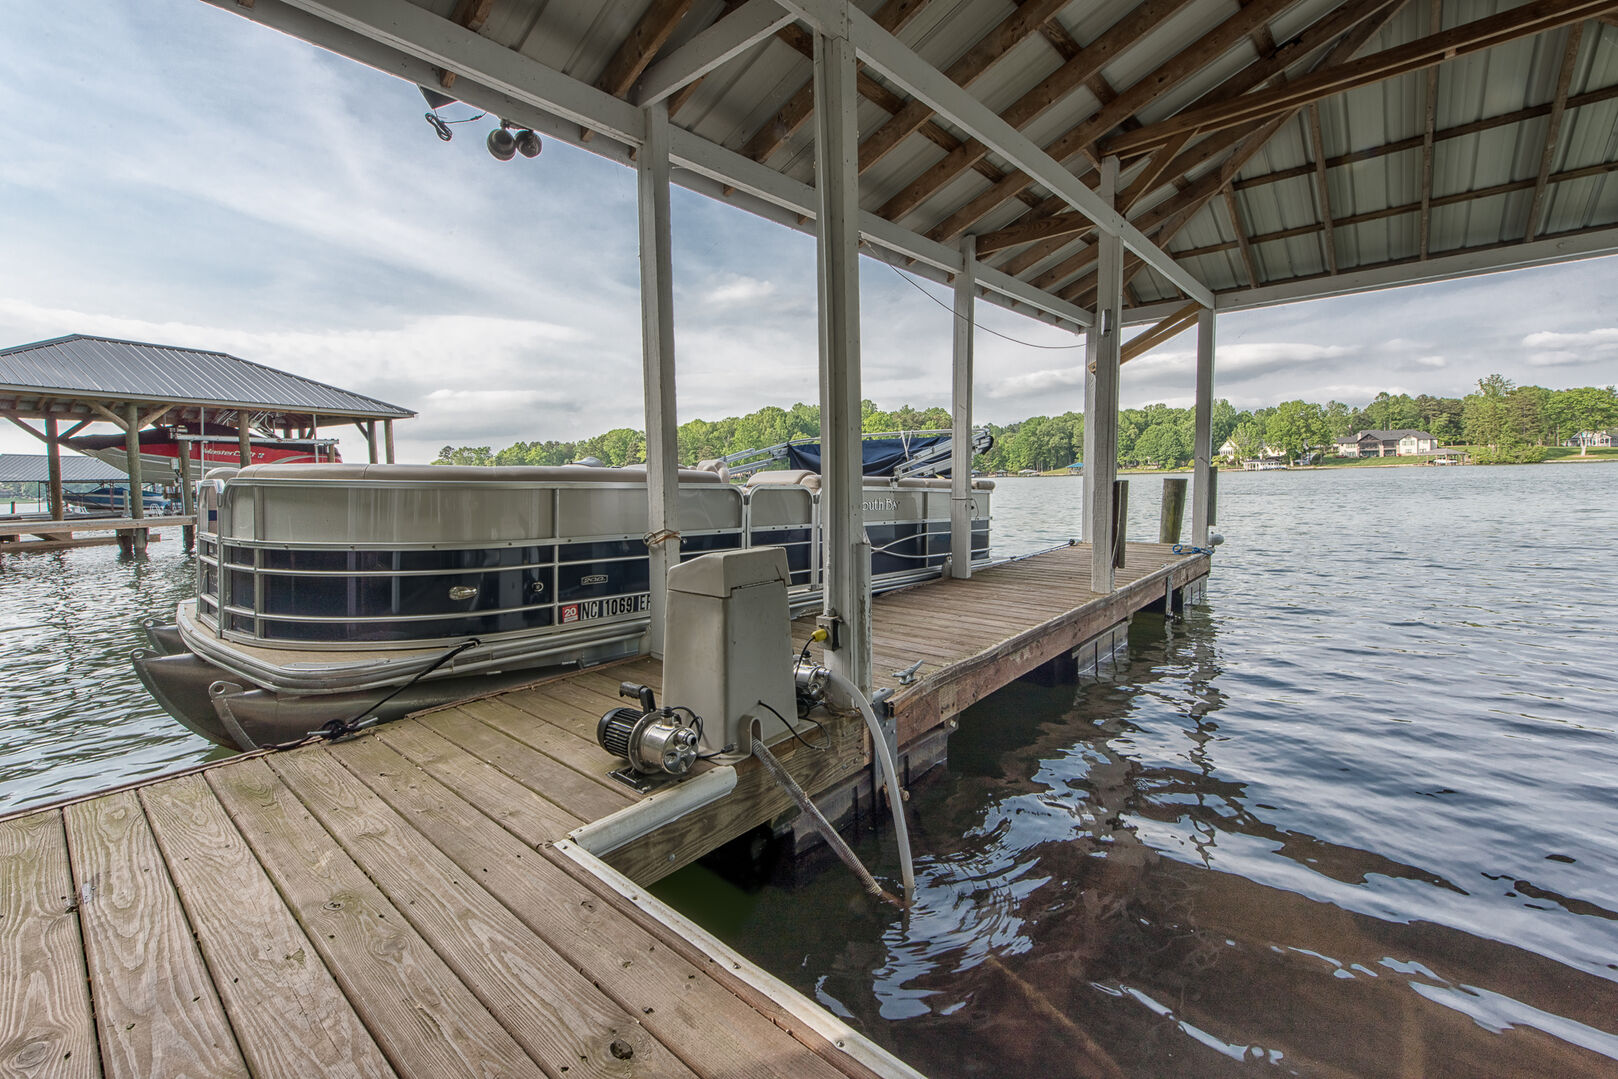 Vacation at Lake Norman: Lucky's Lake House in Mooresville